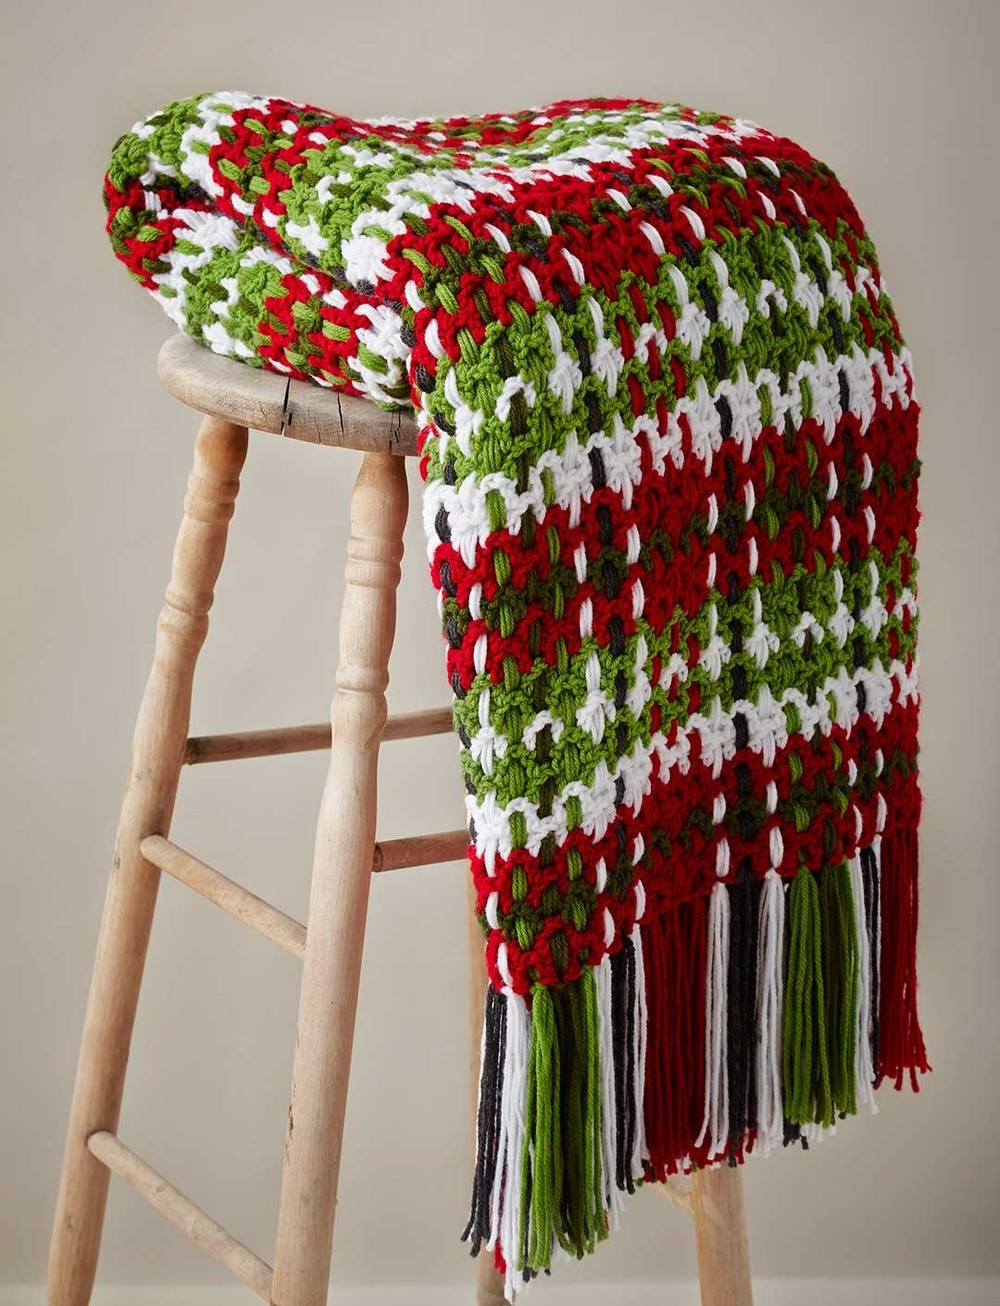 Modern Crochet Patterns Awesome Contemporary Plaid Crochet Afghan Pattern Of Adorable 44 Pictures Modern Crochet Patterns